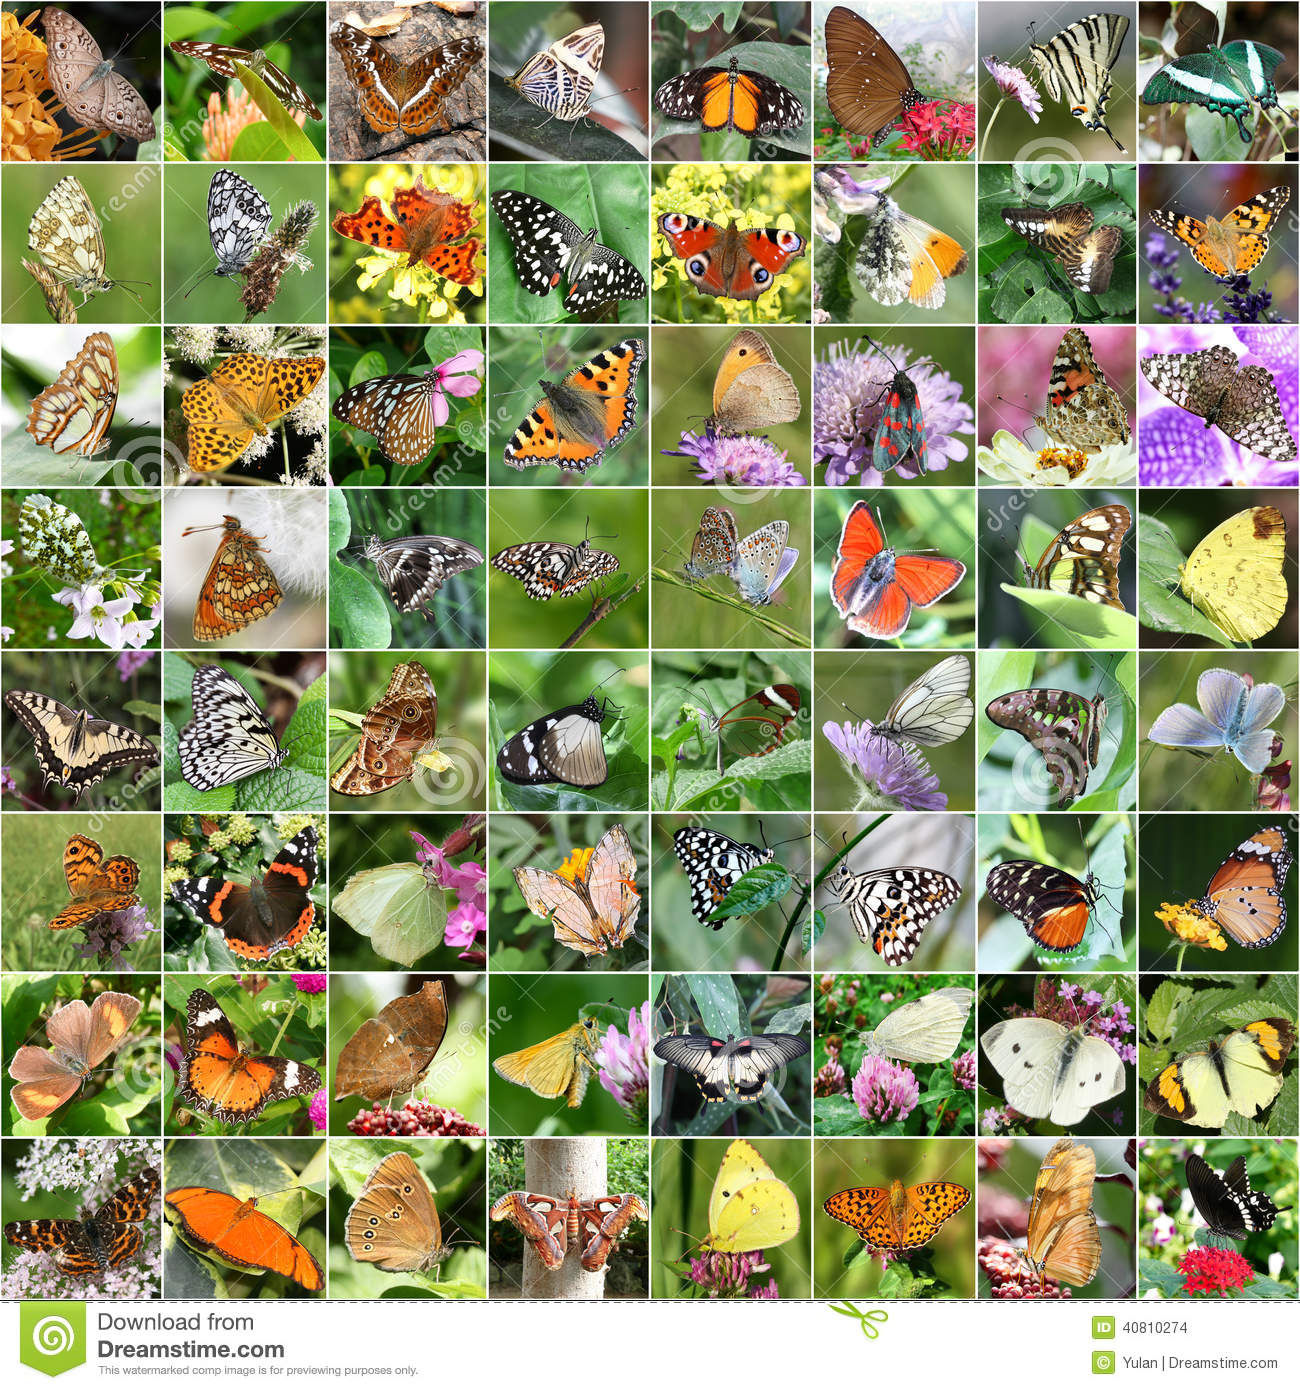 Plants In The Tropical Rainforest Collage Rainforest Animal Coll...